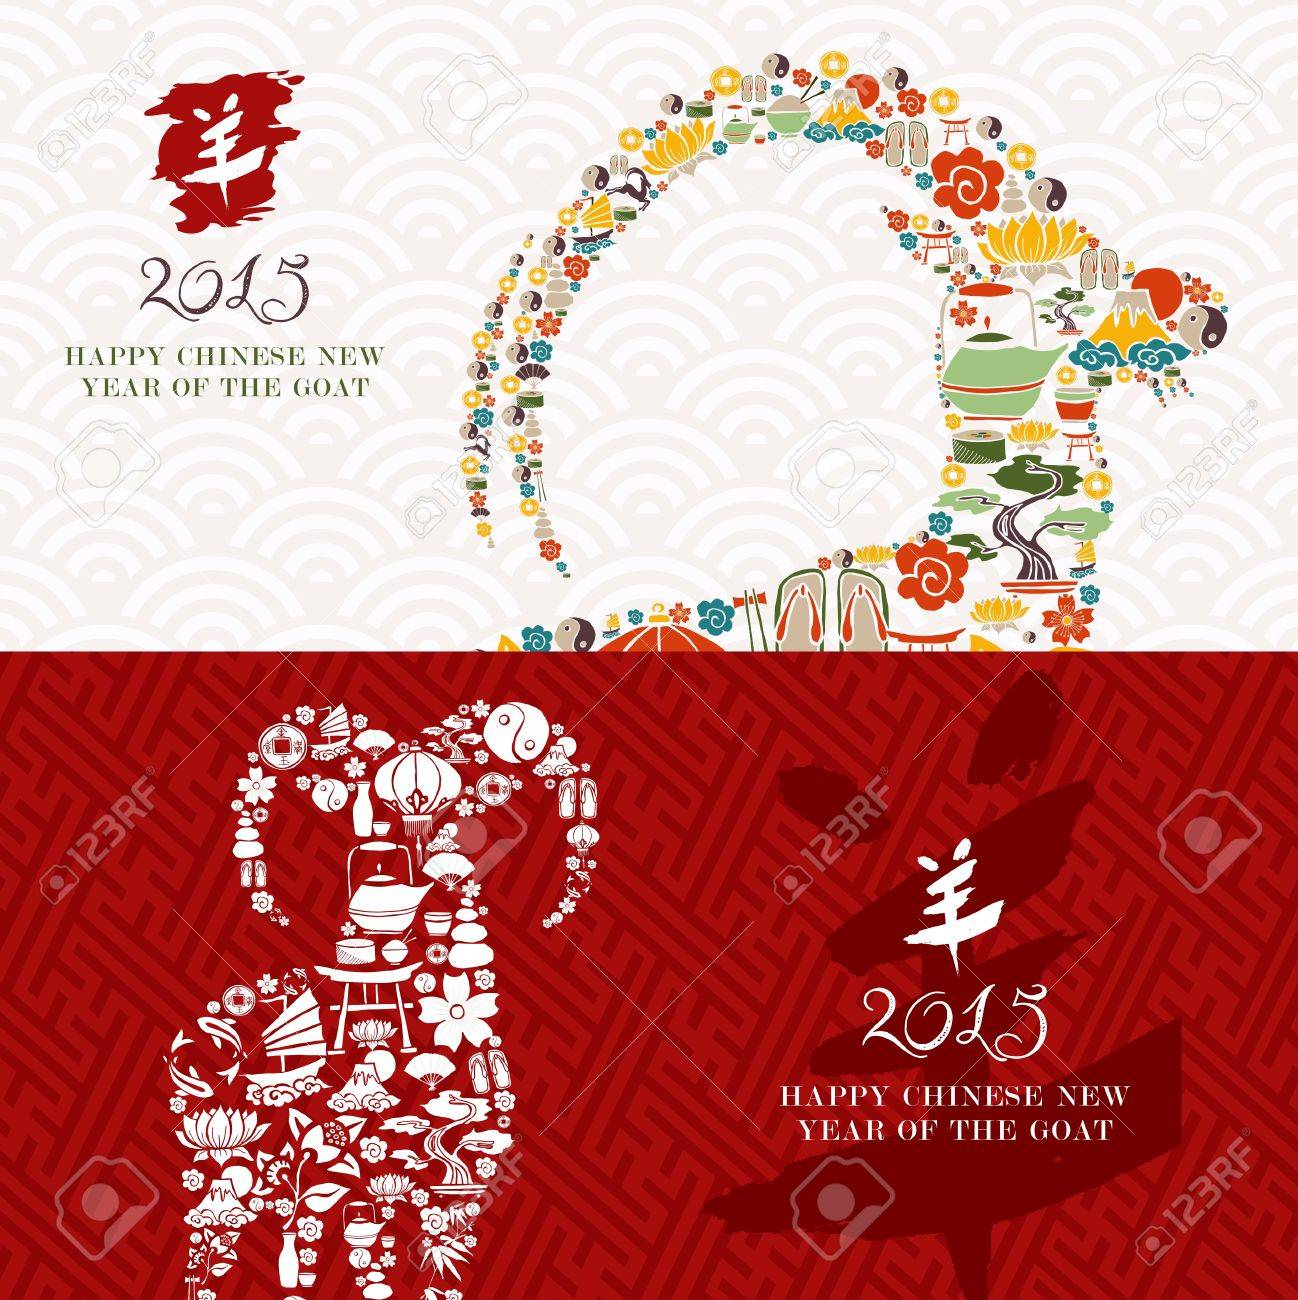 2015 chinese new year of the goat holidays greeting cards set 2015 chinese new year of the goat holidays greeting cards set with oriental icons composition kristyandbryce Choice Image